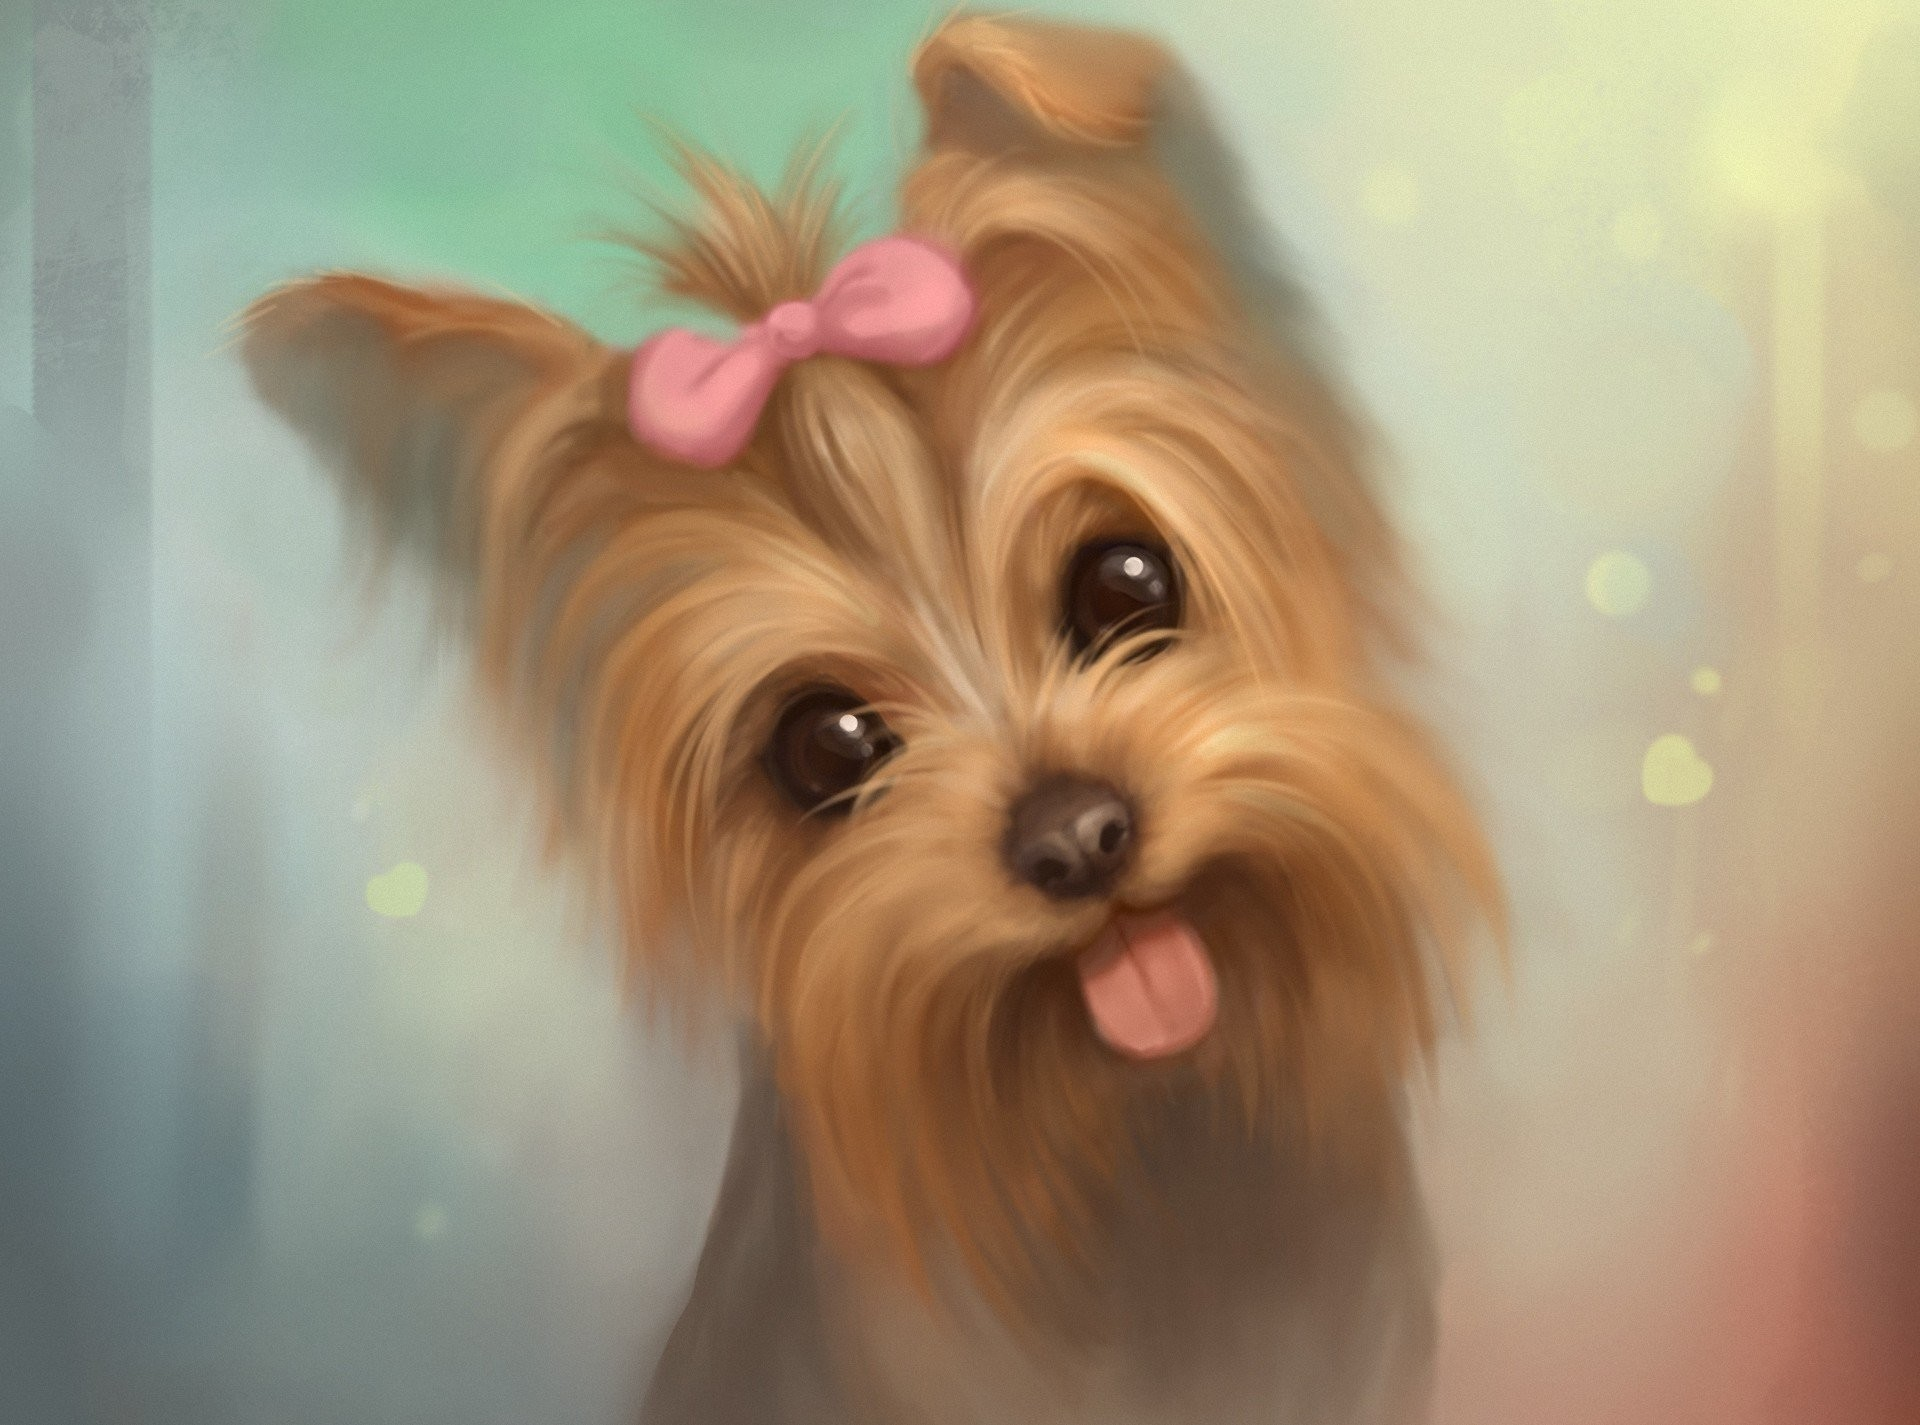 L~B~J~ images Cute Yorkie Dog HD wallpaper and background photos